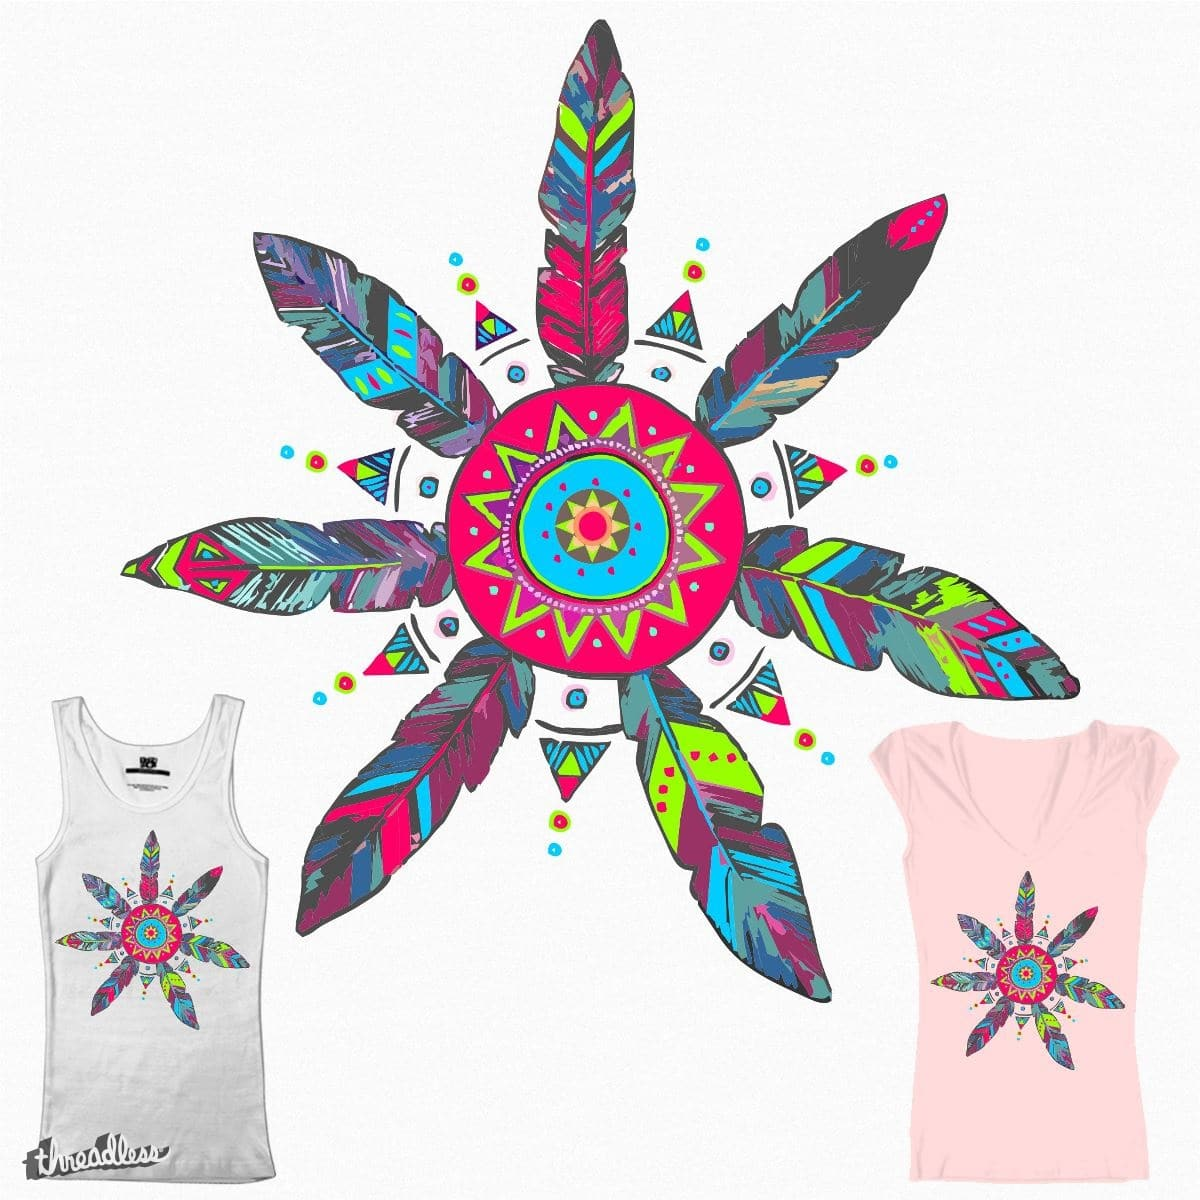 Feathers by thootha on Threadless